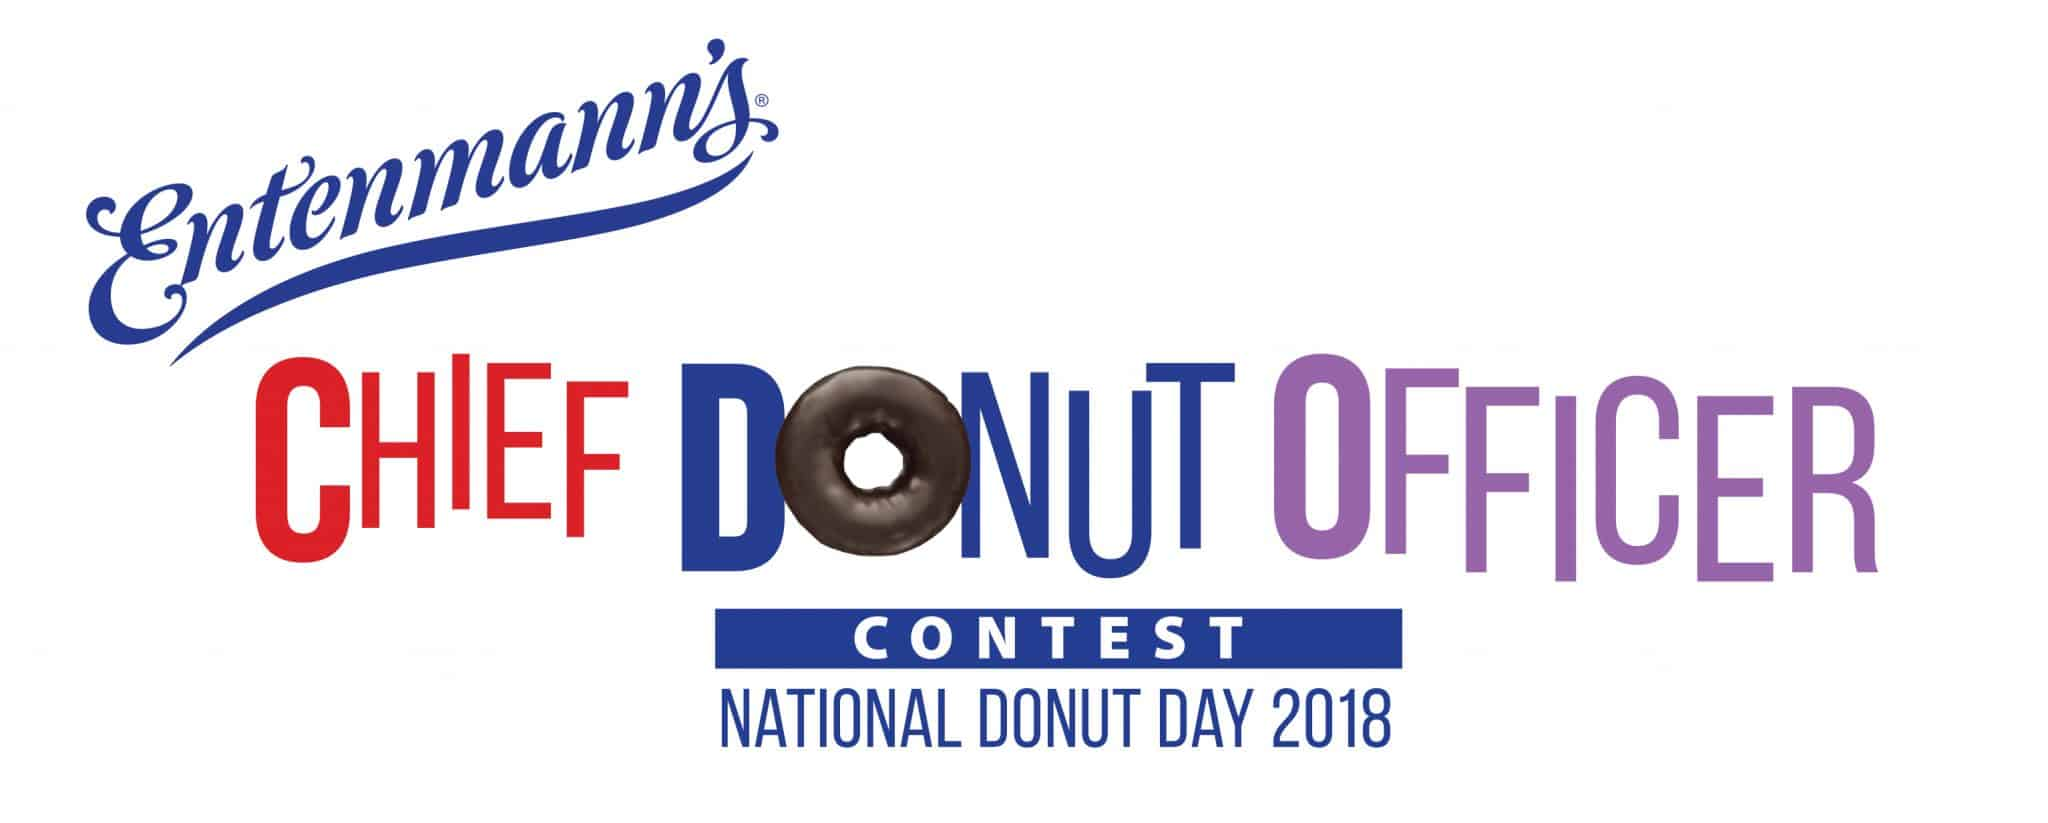 Are you a Chief Donut Officer? You could win $5,000 and free donuts for a year!